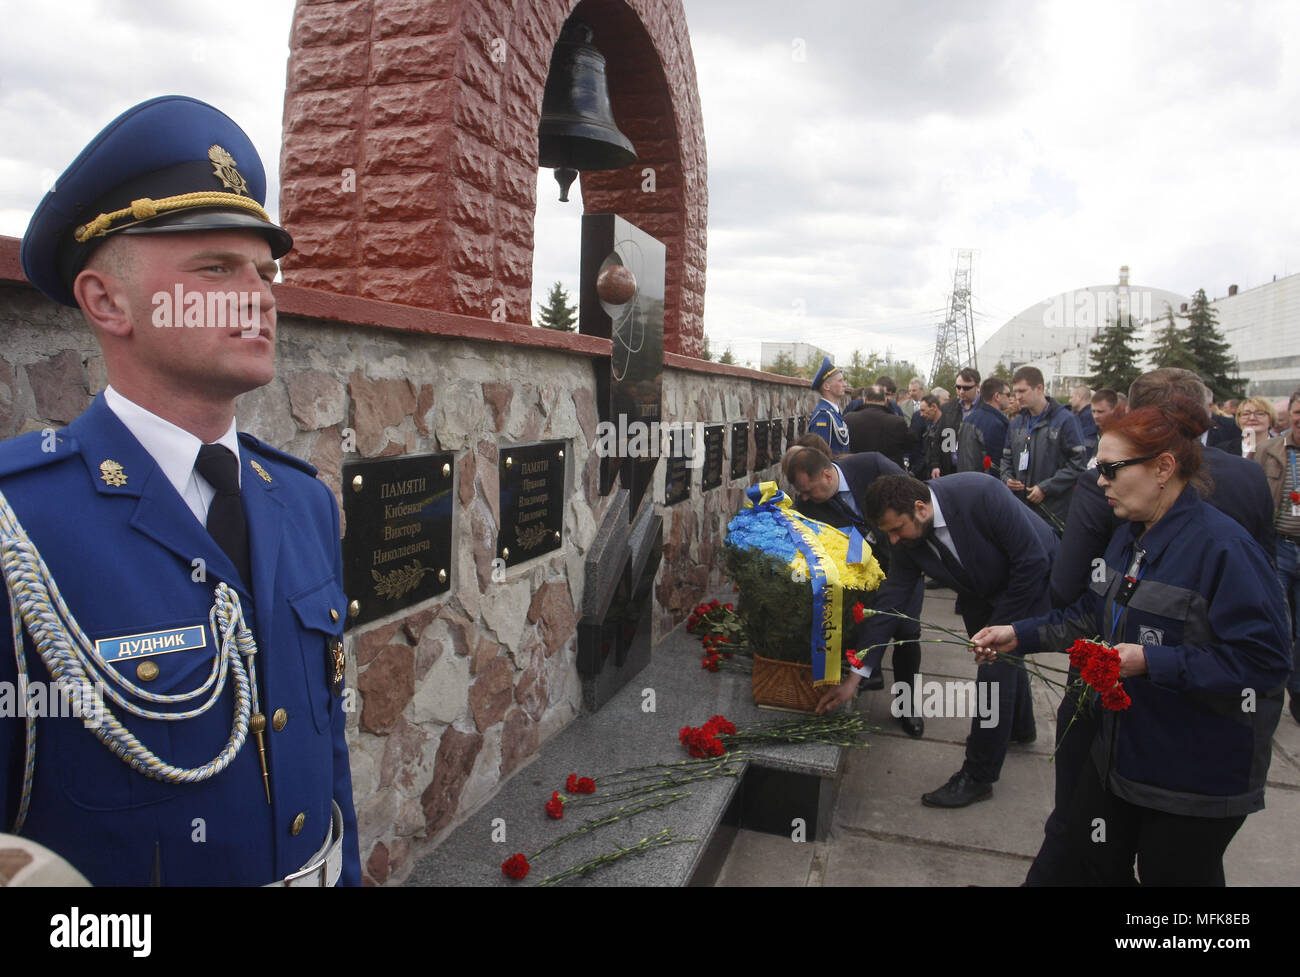 Kiev, Ukraine. 26th Apr, 2018. Chernobyl power plant workers lay flowers to the monument honoring people who were killed in the Chernobyl nuclear power plant disaster, during a ceremony in Chernobyl, Kiev region, Ukraine, on 26 April 2018. Ukrainians mark the 32th anniversary of Chernobyl's tragedy. The explosion of Unit 4 of the Chernobyl nuclear power plant on 26 April 1986 is still regarded the biggest accident in the history of nuclear power generation. Credit: Serg Glovny/ZUMA Wire/Alamy Live News - Stock Image